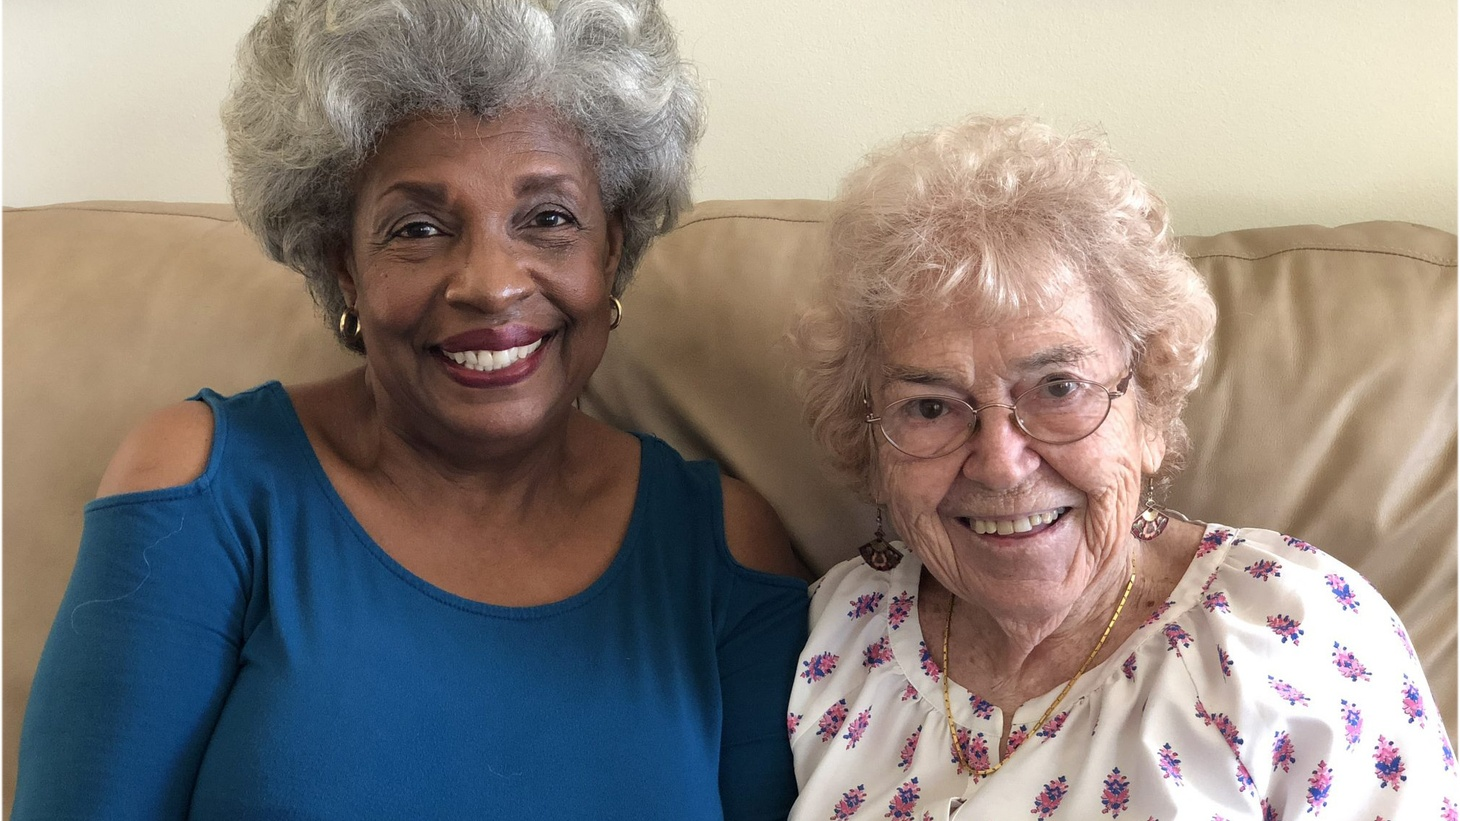 Pearlie Biles, left, and Jo Slee found each other through an agency called Affordable Living for the Aging, and became roommates at Slee's home in Westchester. Photo by Jenny Hamel.